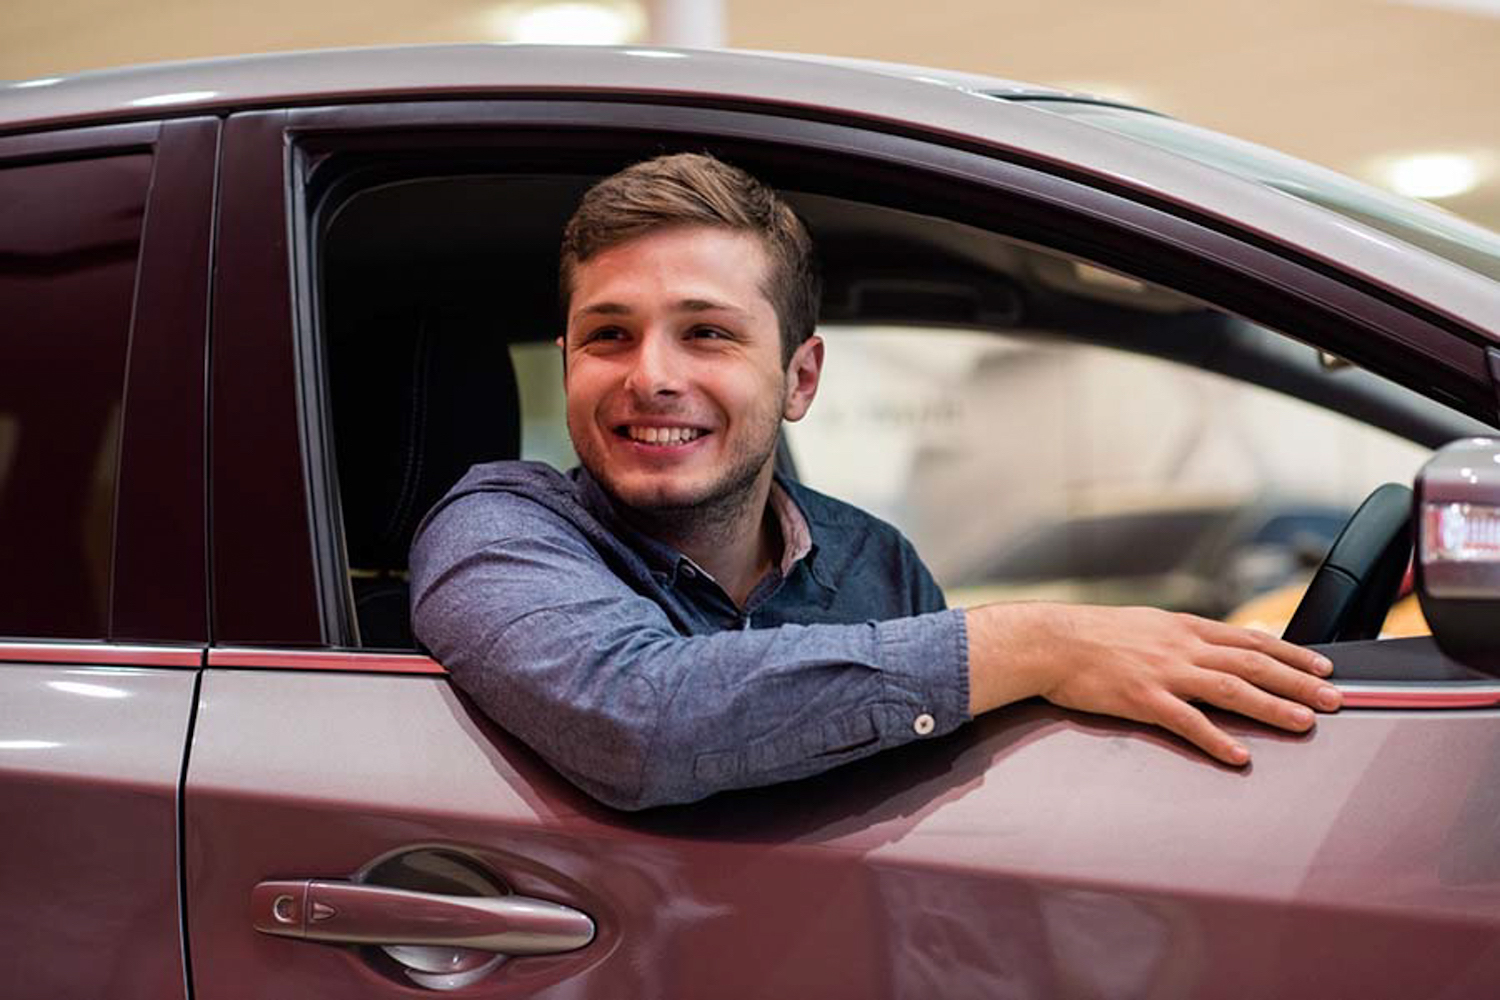 Car News | Car ownership to surge thanks to 'Millennials' | CompleteCar.ie